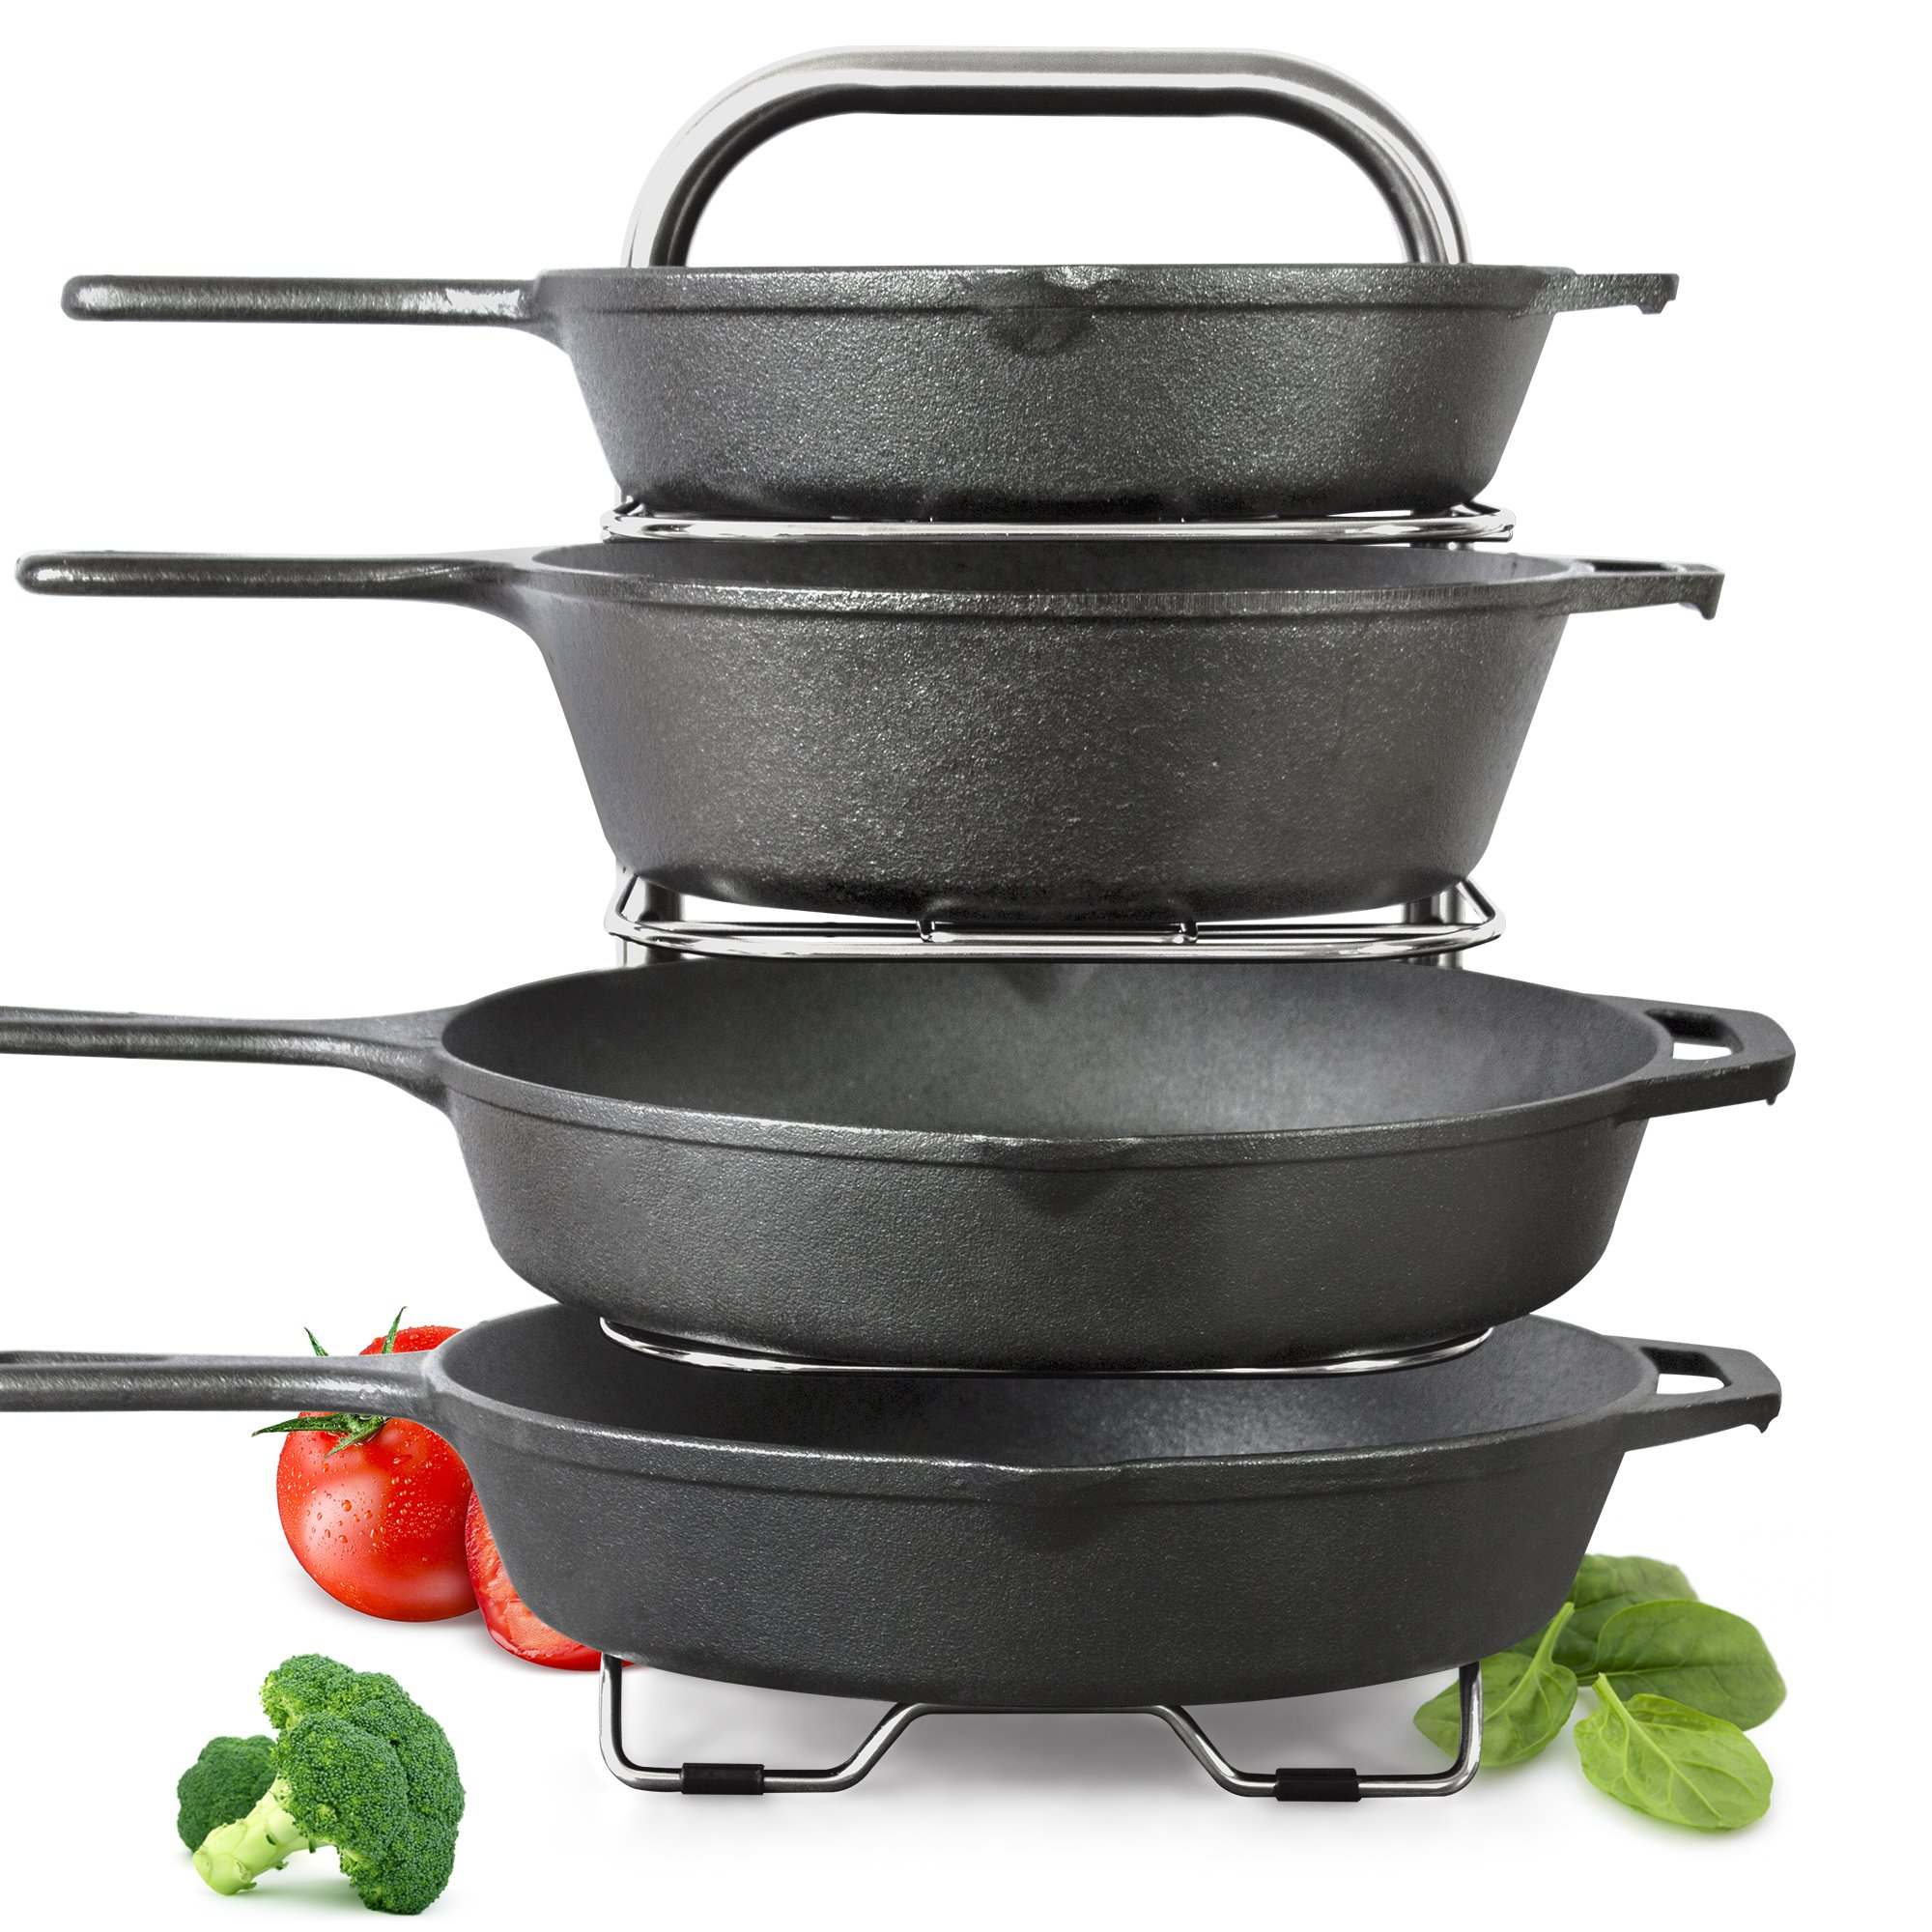 "BetterThingsHome 5-Tier Height Adjustable Pan and Pot Organizer Rack: Adjust in increments of 1.25"", 10, 11 & 12 Inch Cookware Lid Holder, Stainless Steel (16.5'' Tall)"